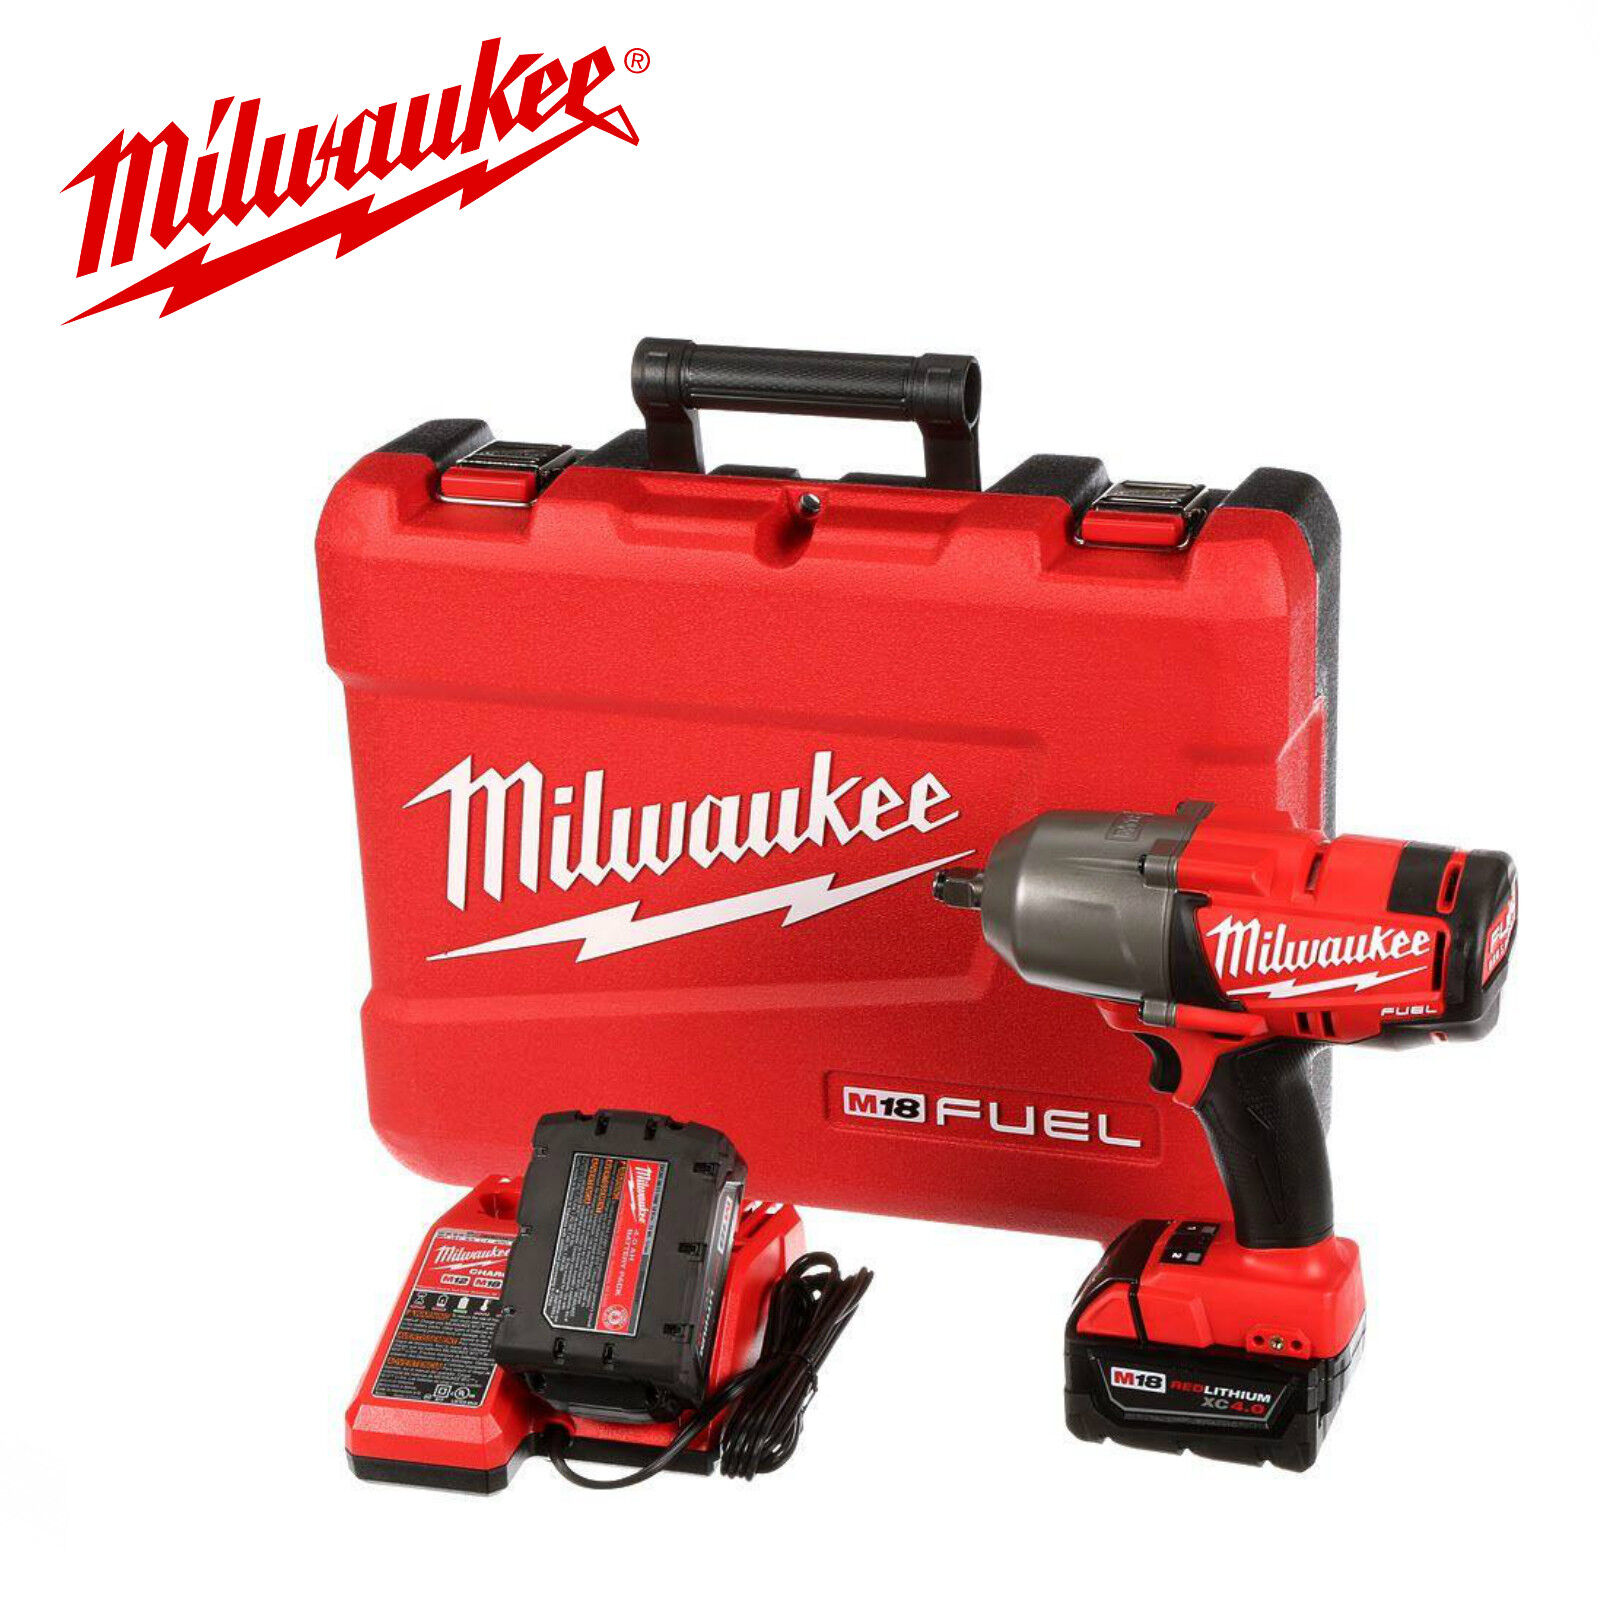 Milwaukee 2763-22 M18 FUEL 1/2